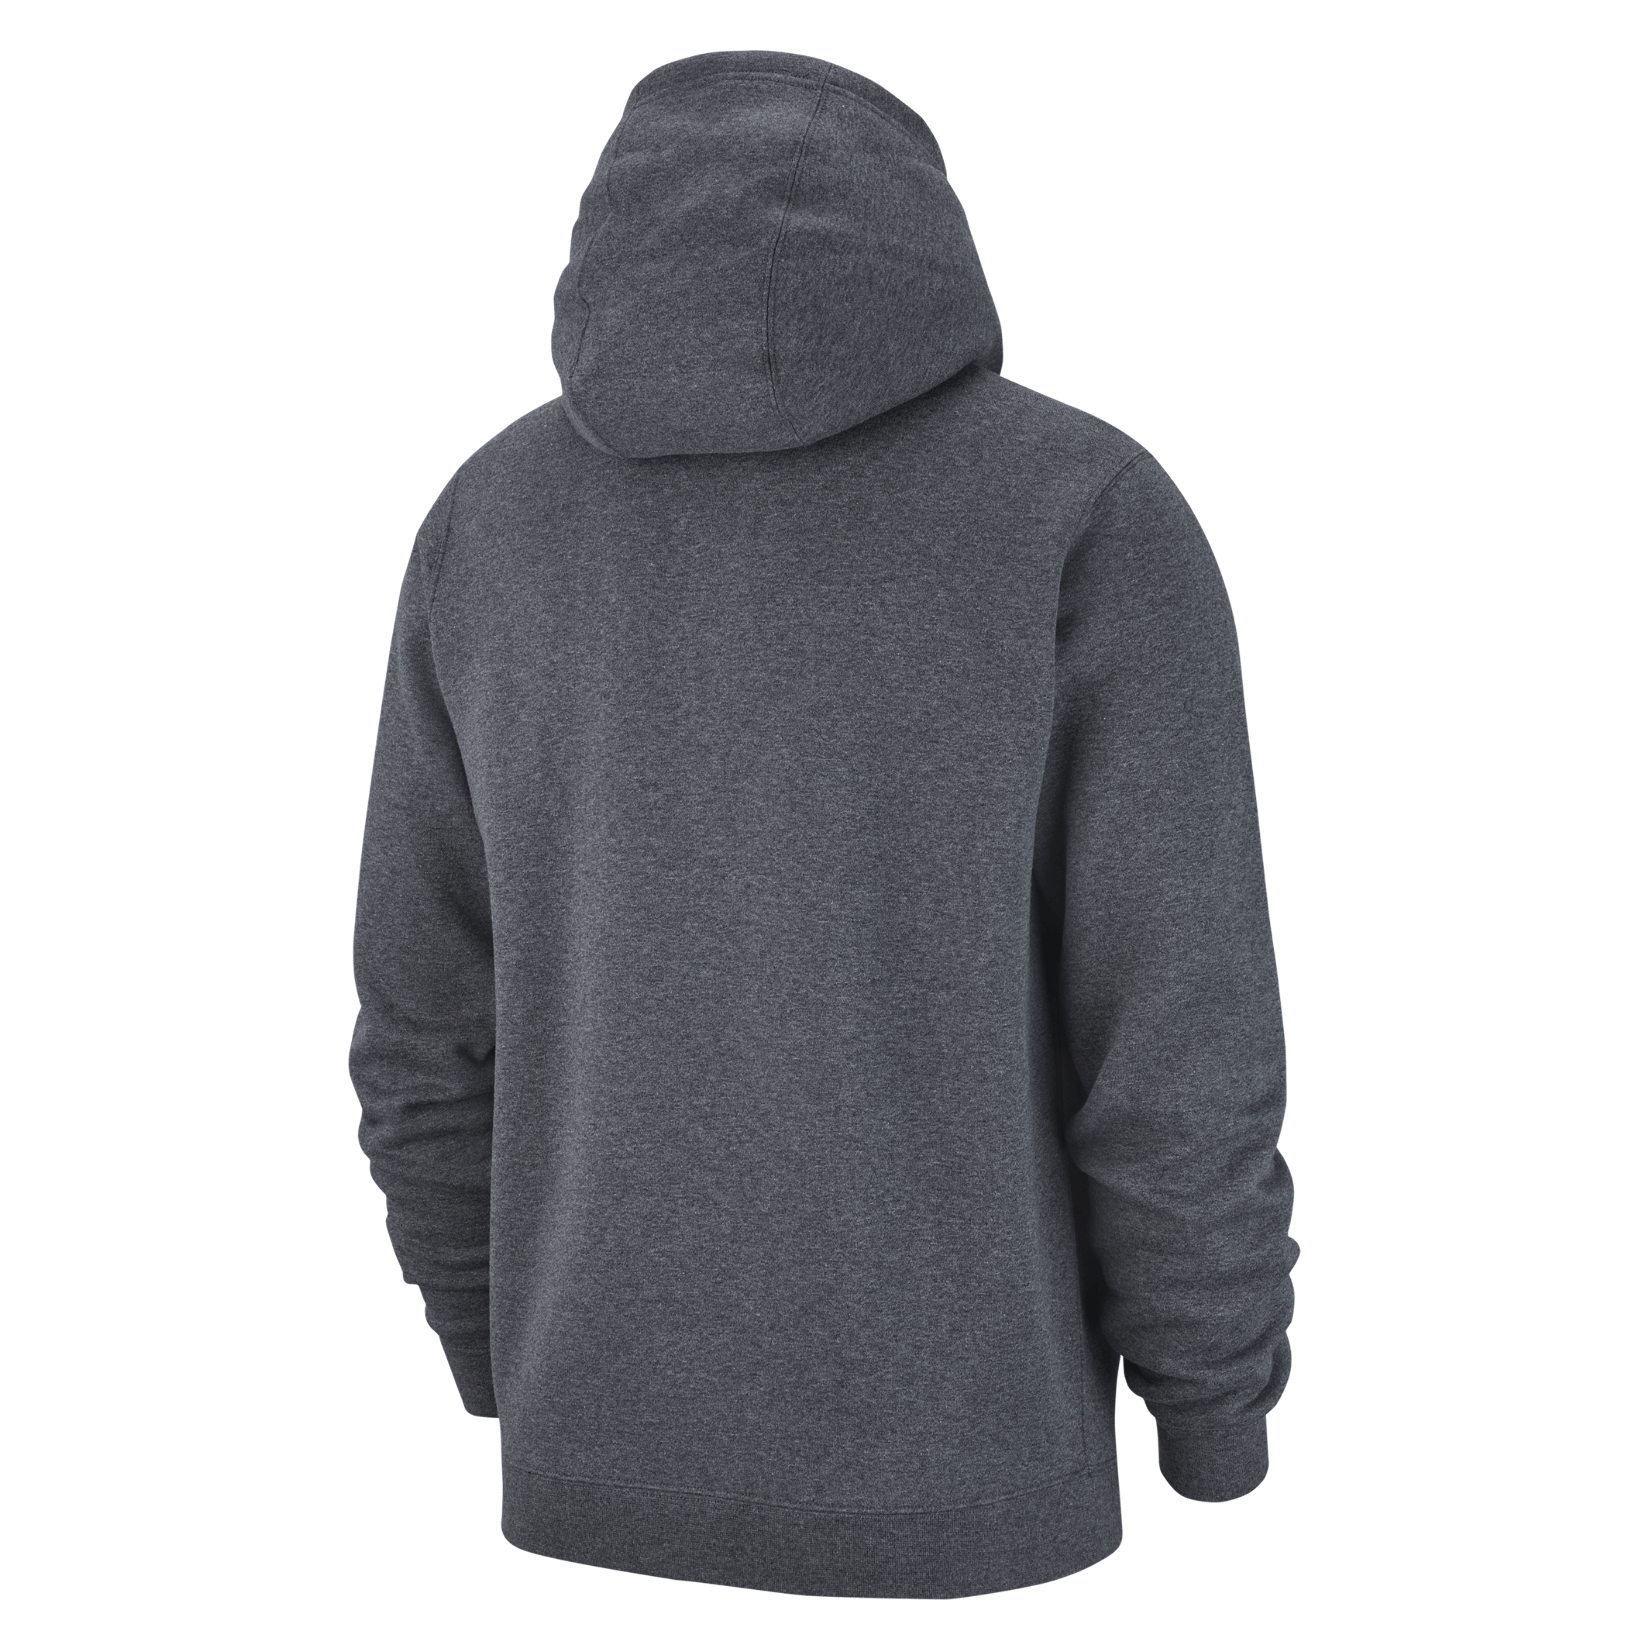 Nike Team Club 19 Hoodie Charcoal Heathr-Anthracite-White-White